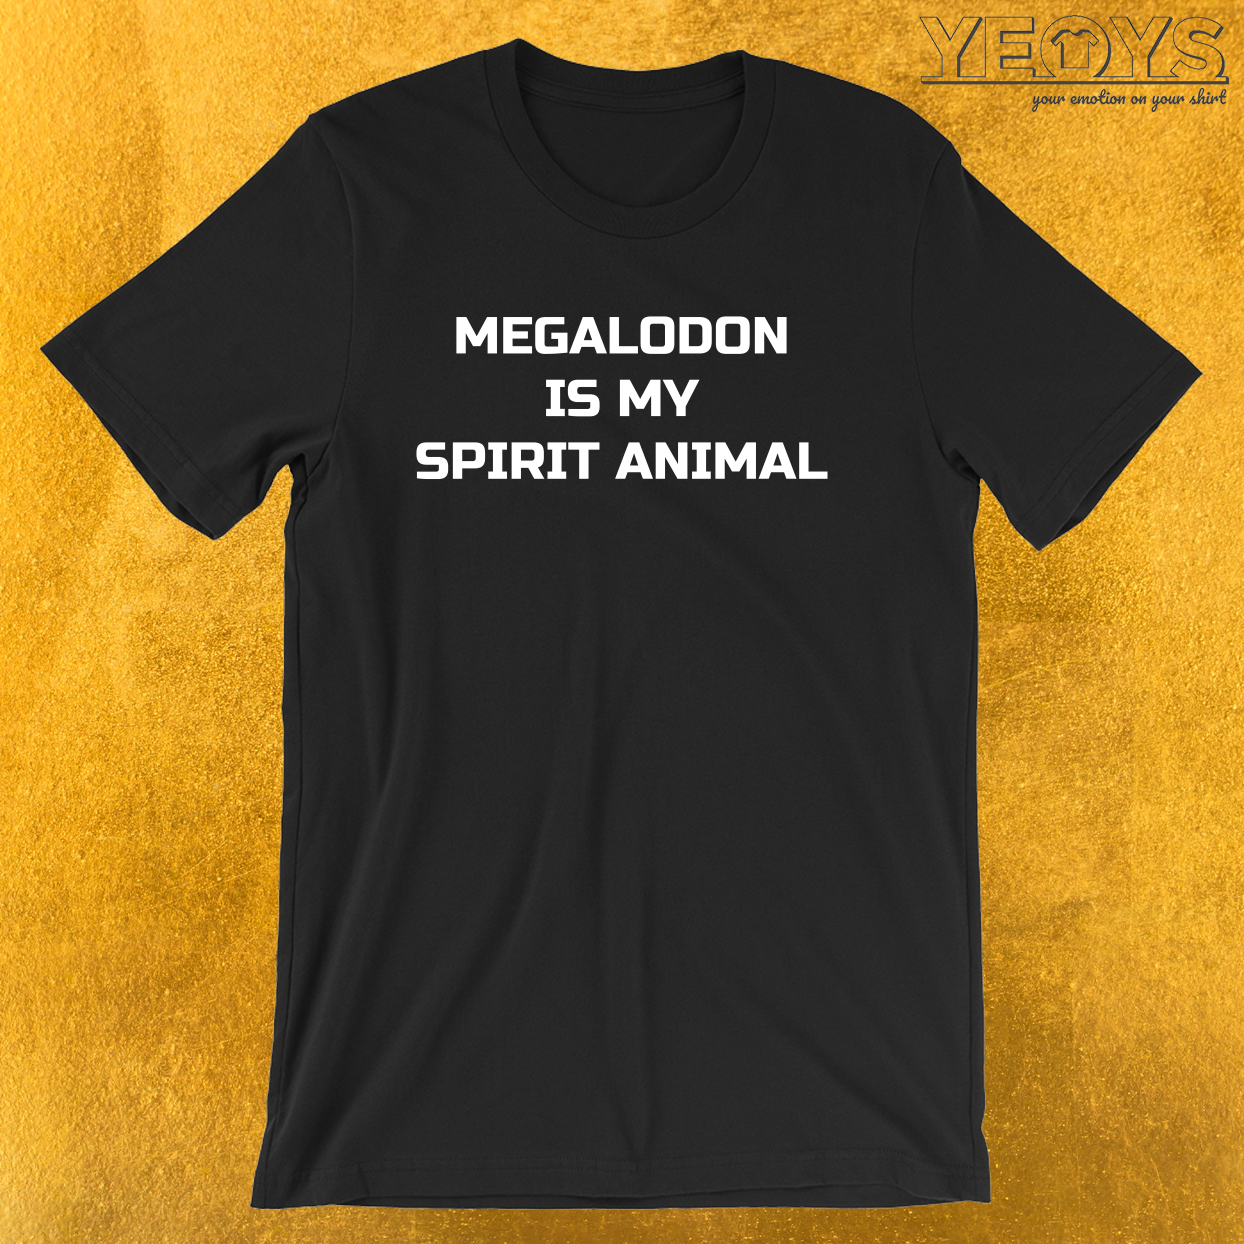 Megalodon Is My Spirit Animal – Megalodon Shark Tee